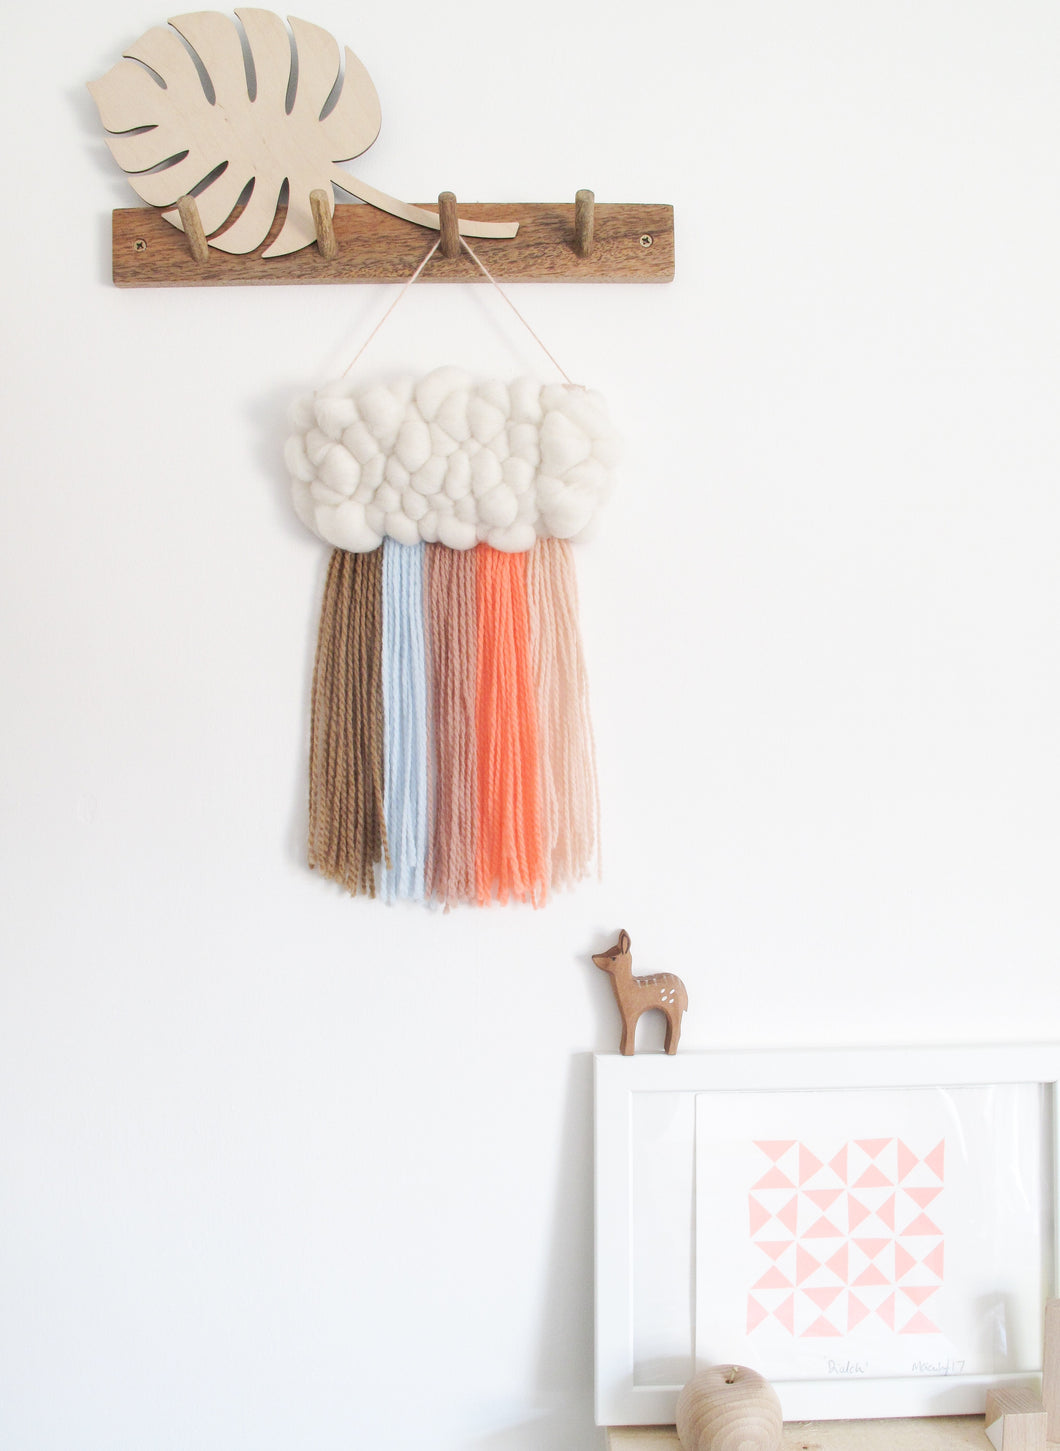 Mini Cloud Woven Wall Hanging in Muted Retro Rainbow